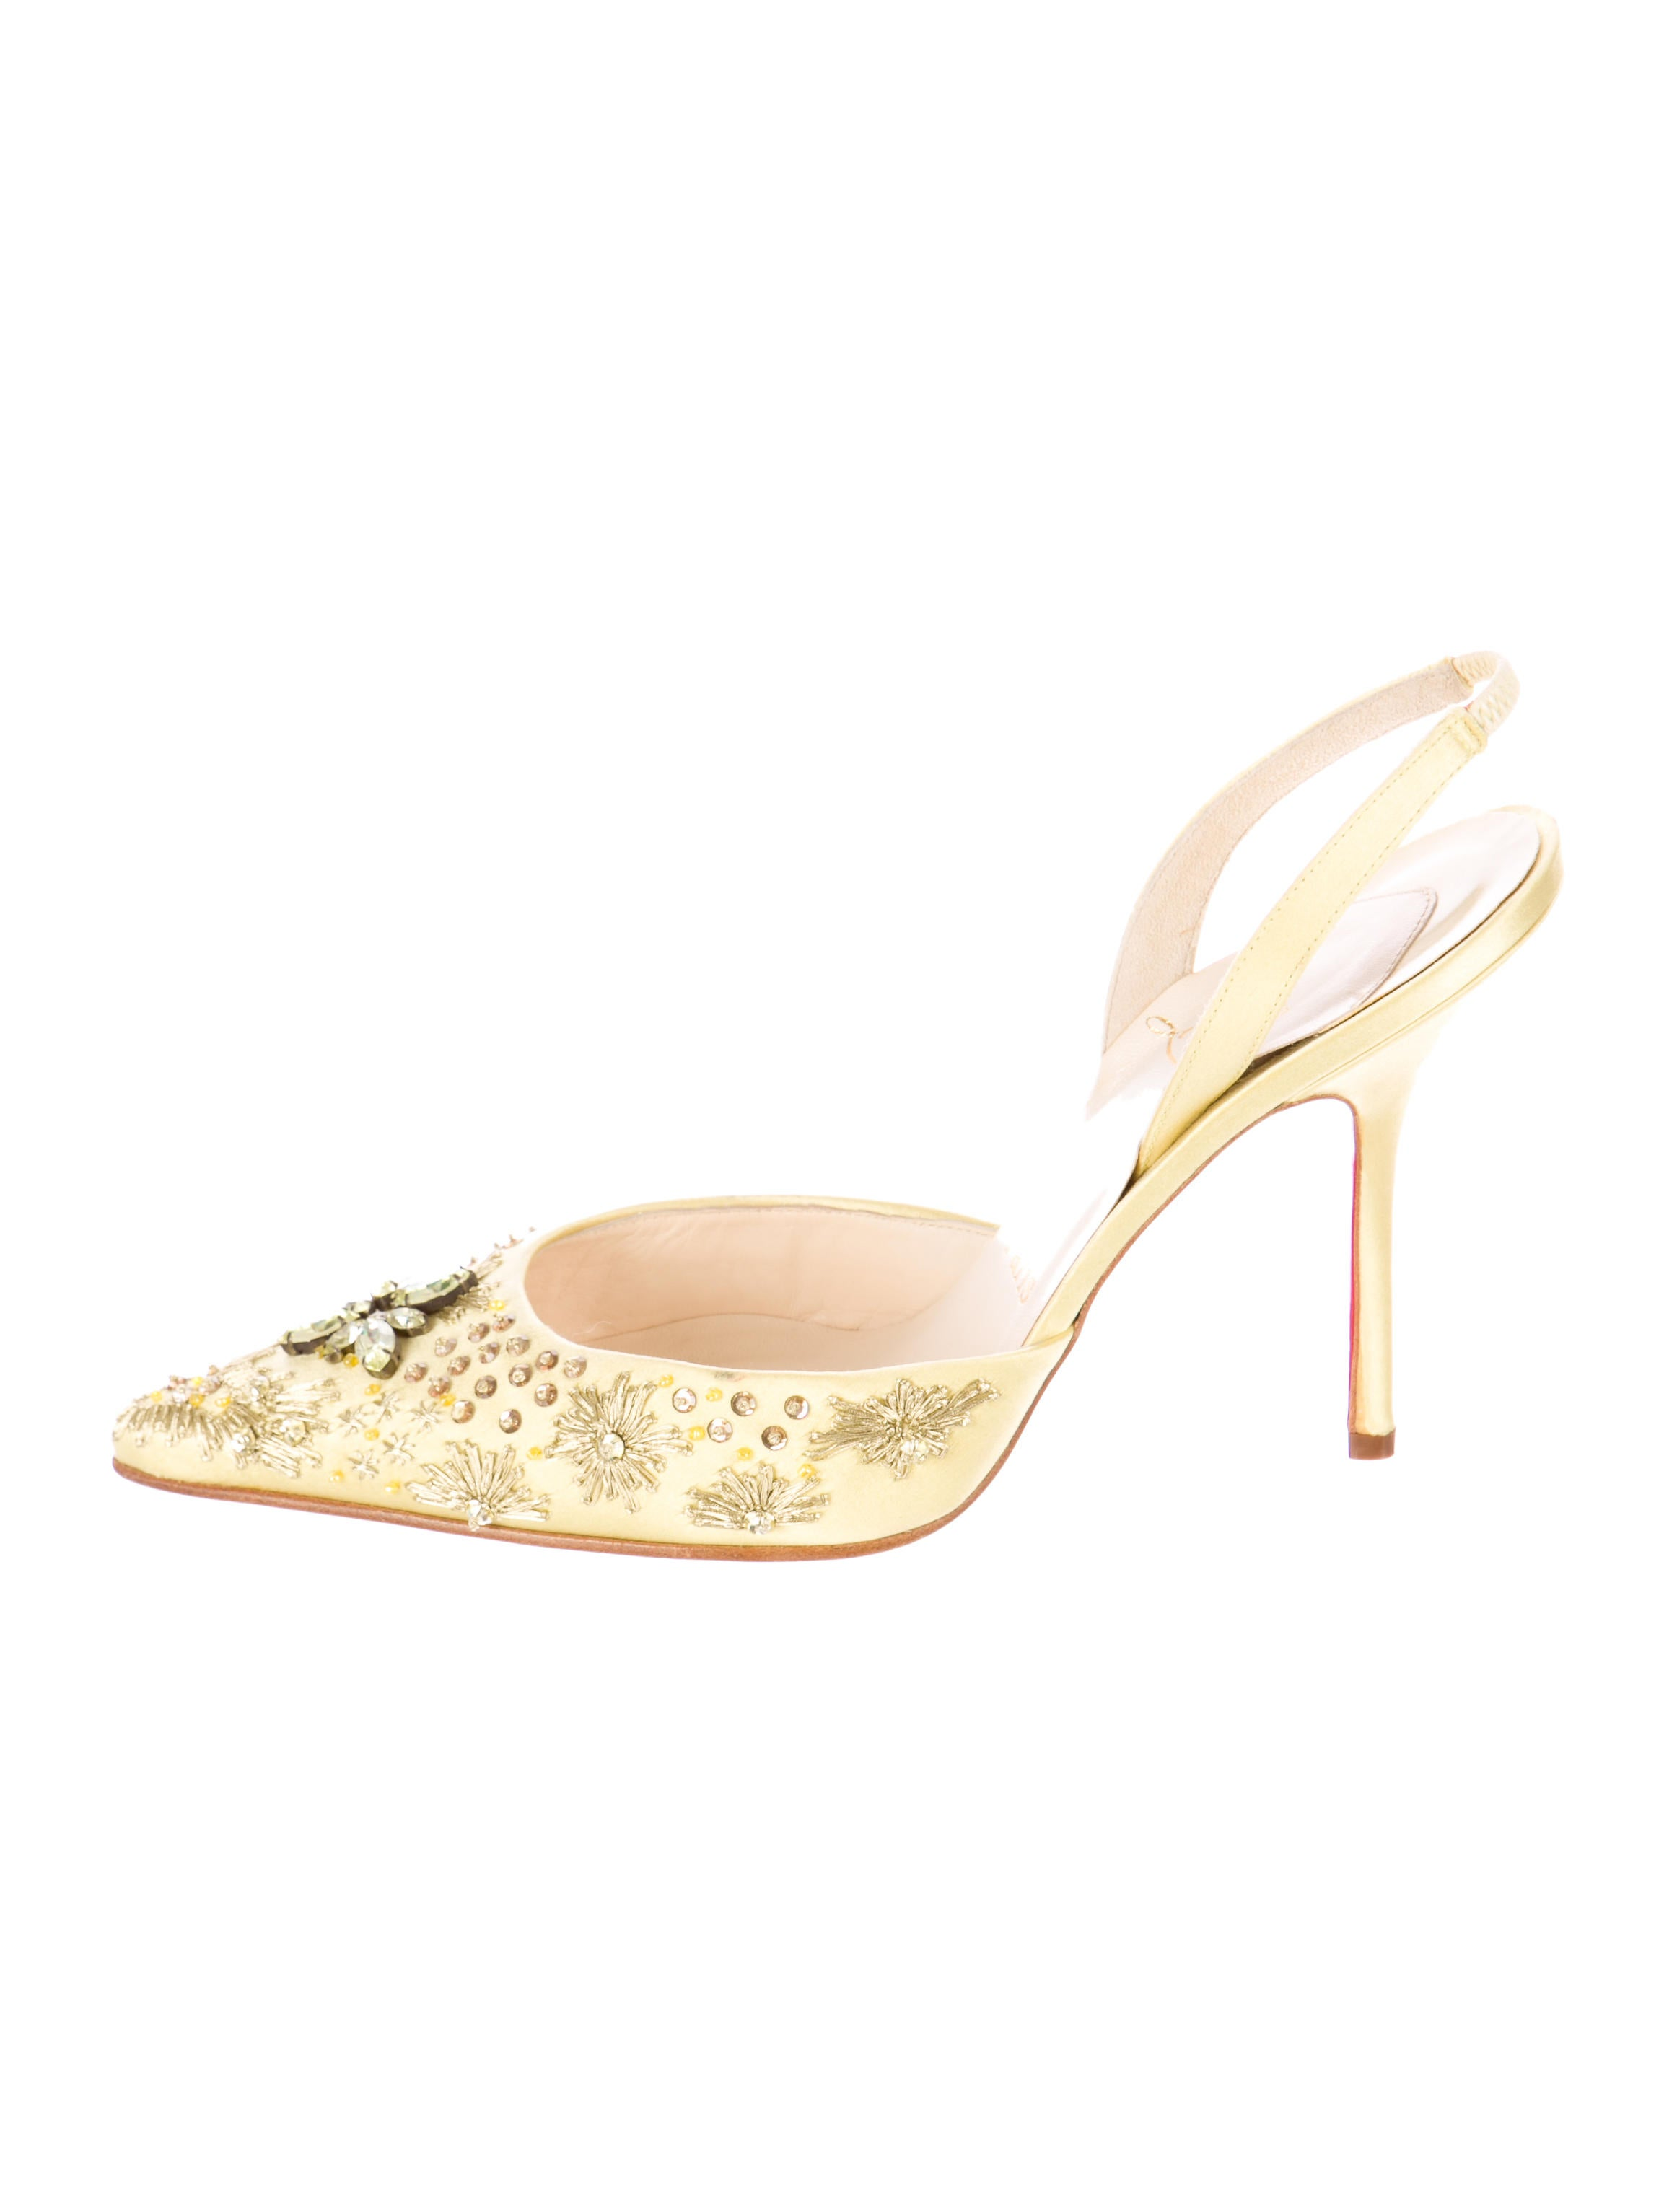 mens red spiked louboutins - christian louboutin slingback pumps Pale yellow satin | The Little ...